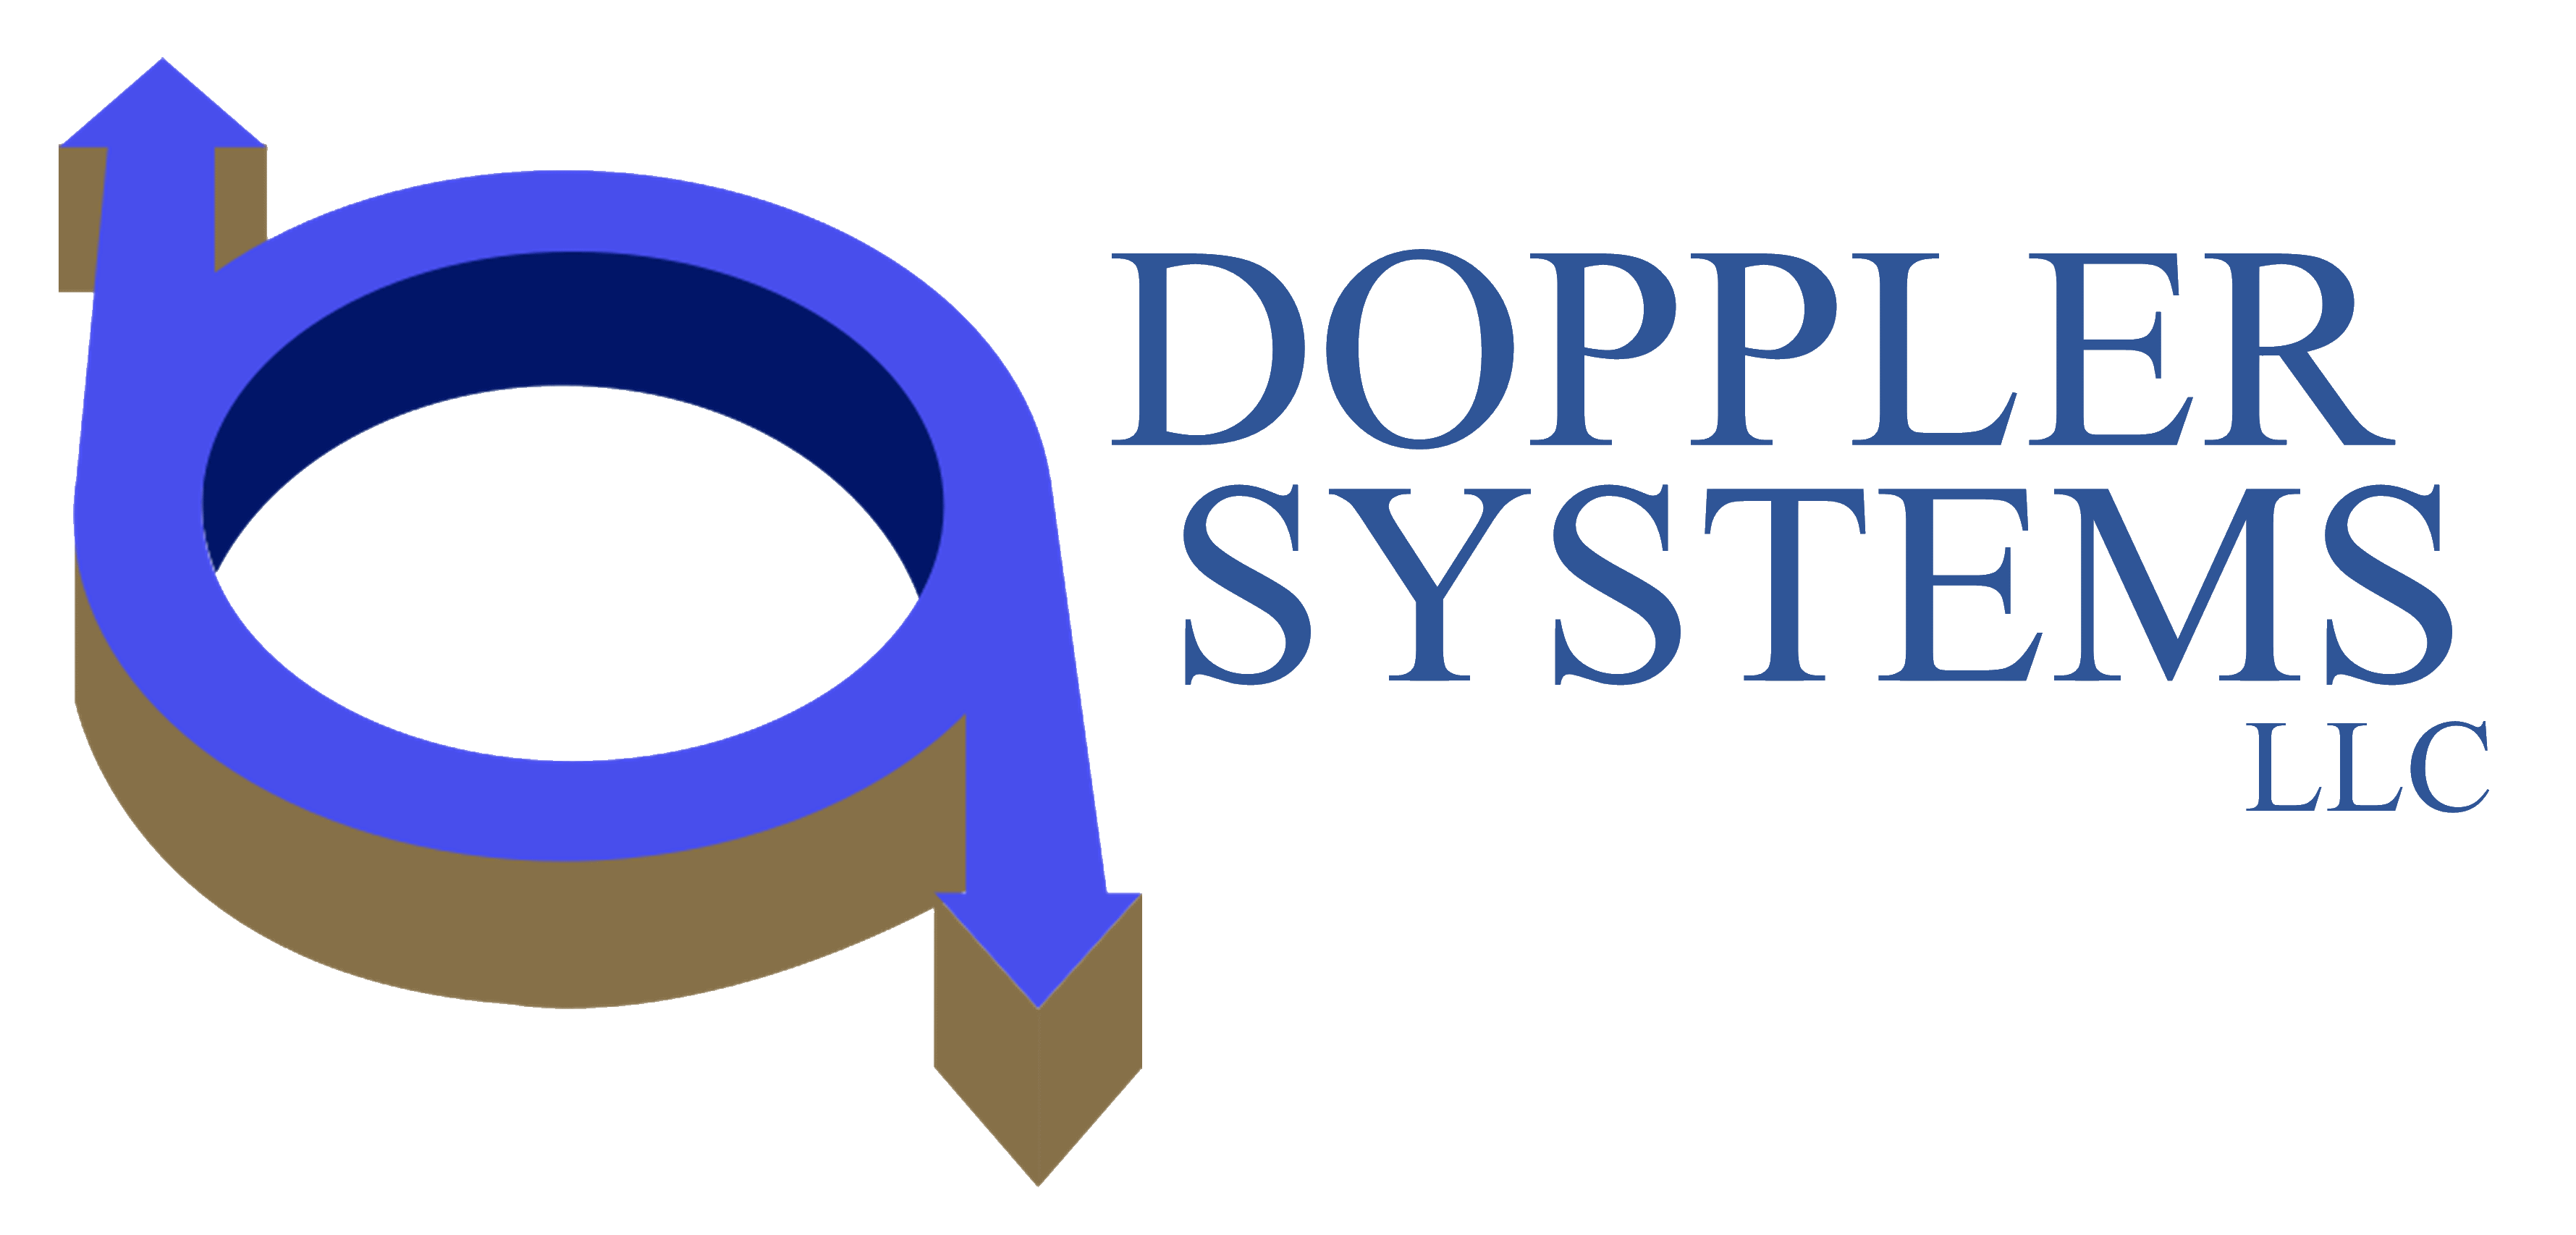 Doppler Systems, LLC